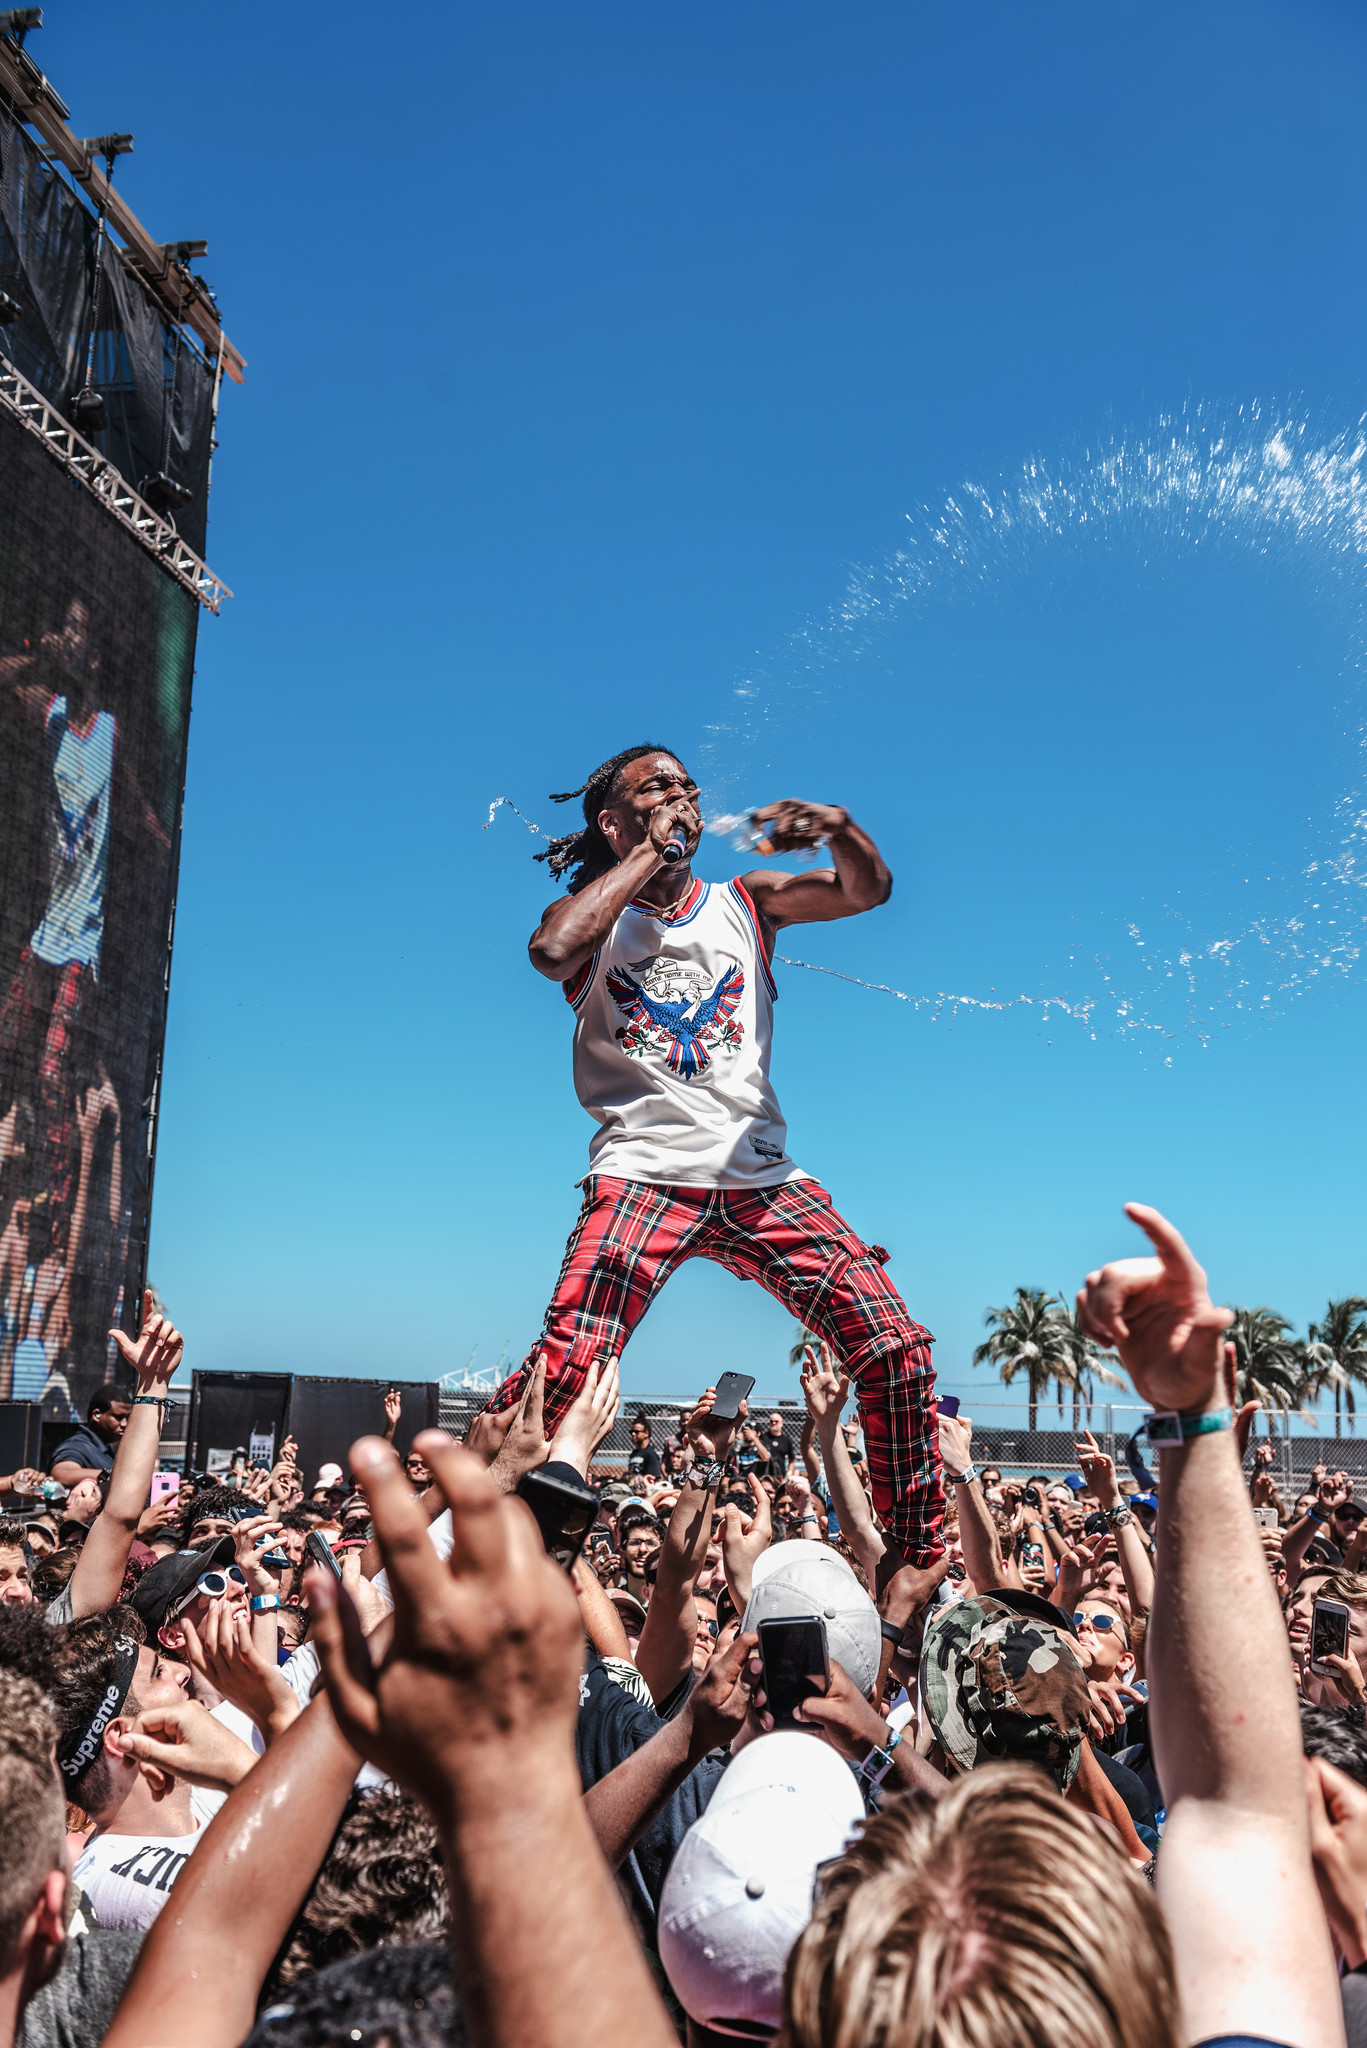 Why hip hop once ostracized in clubs is ruling the festival 1367x2048